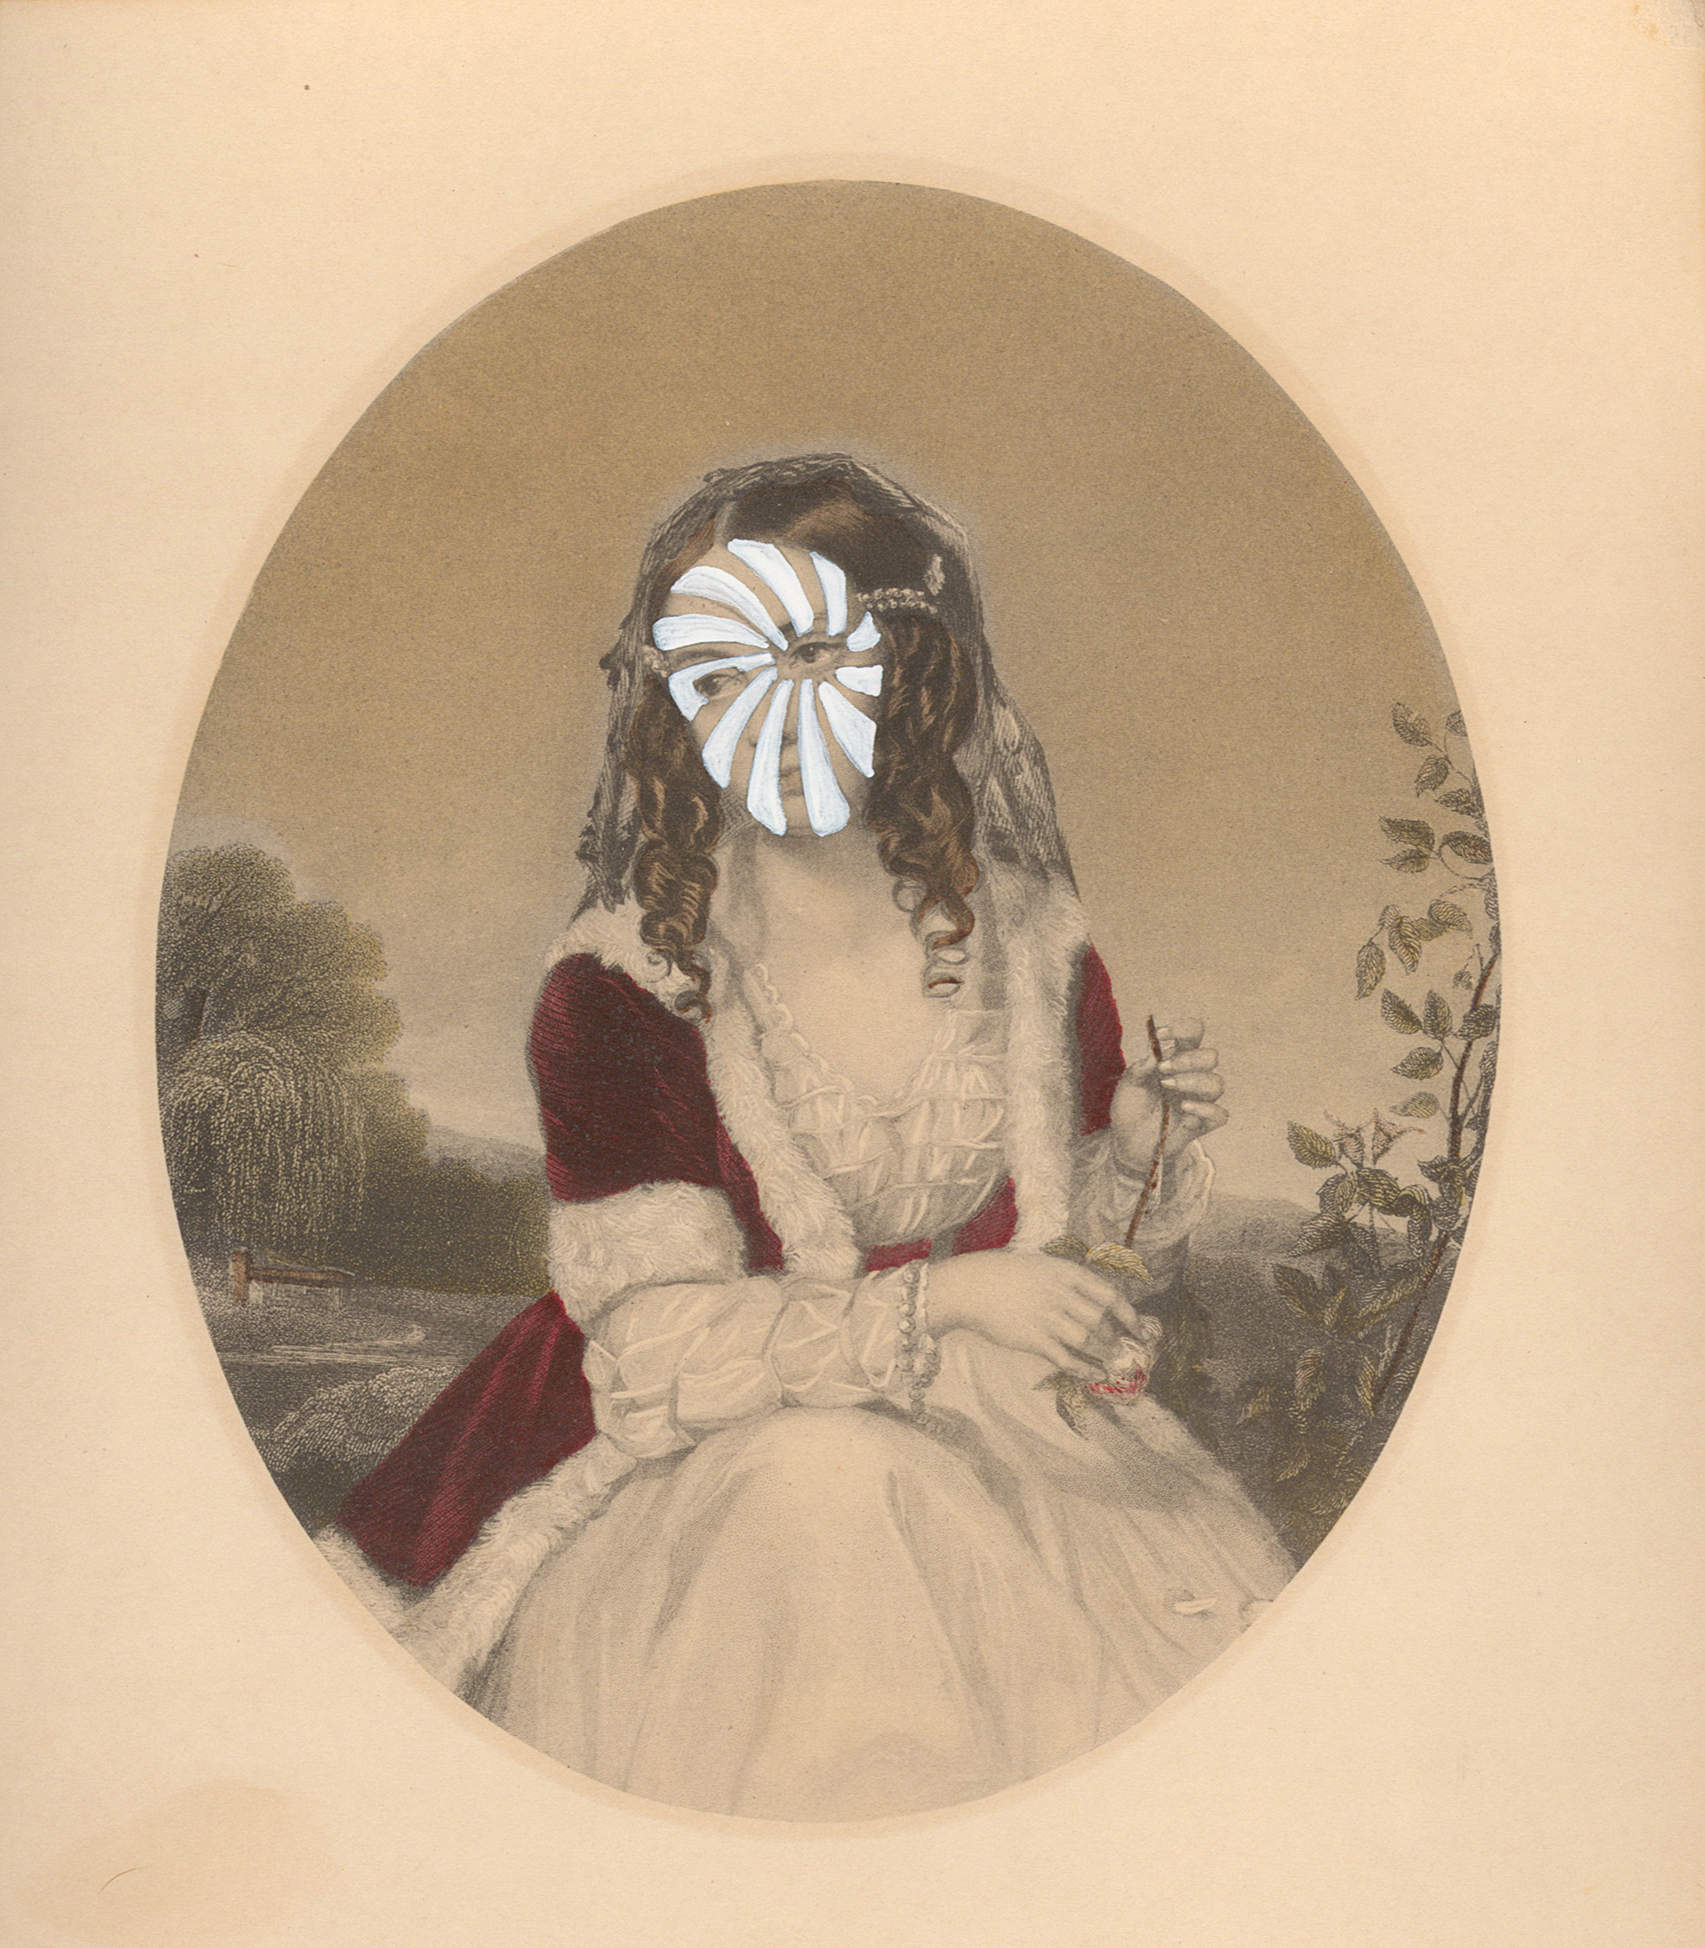 "Mrs. William Vanderlyn 1841/2014 , gouache on vintage offset litho, 7"" x 6"", 2014"